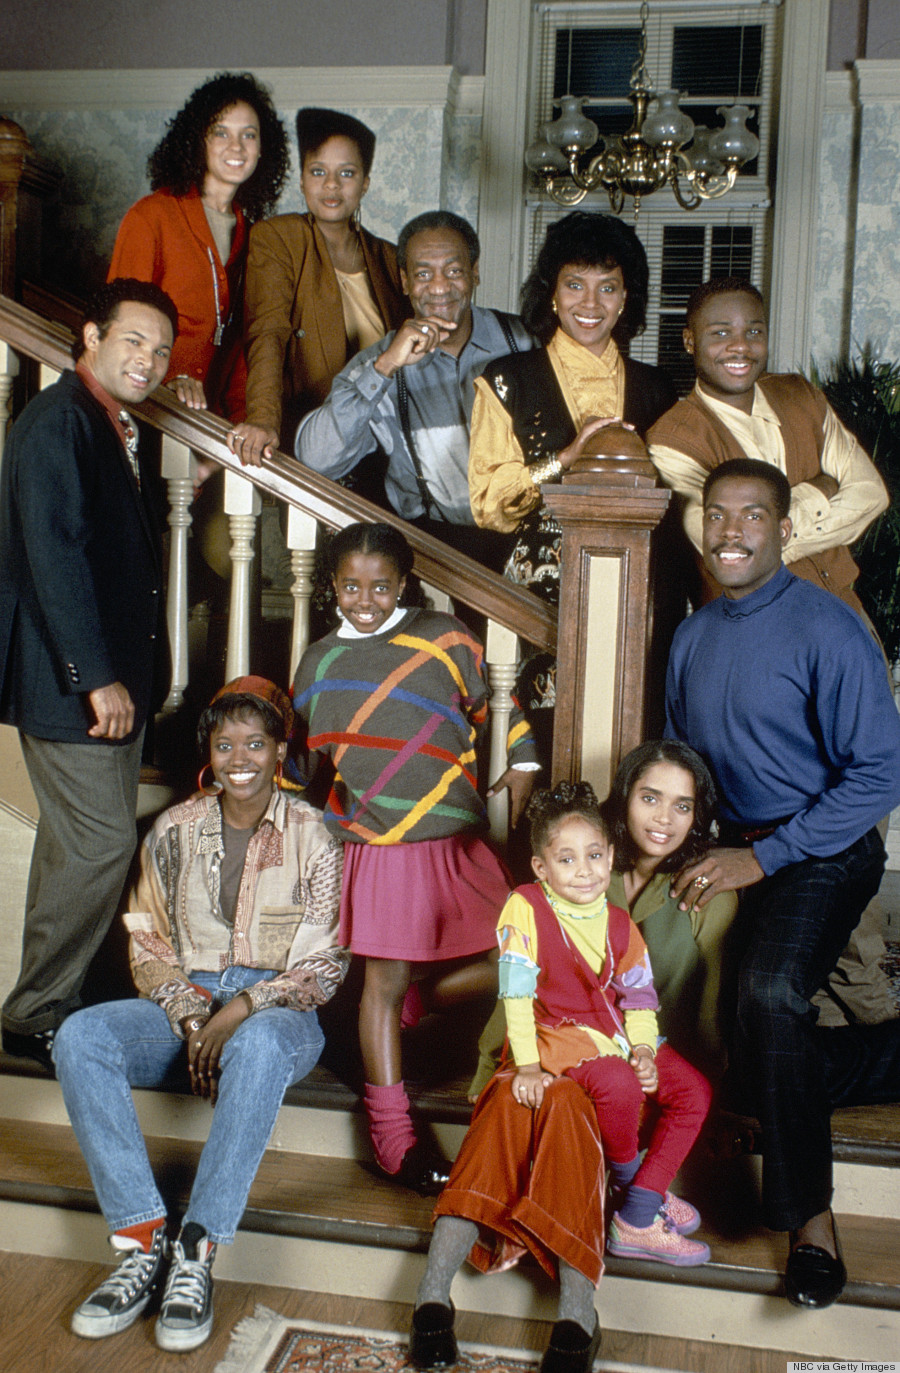 Bill cosby family photos - The Cosby Show Cast Season 7